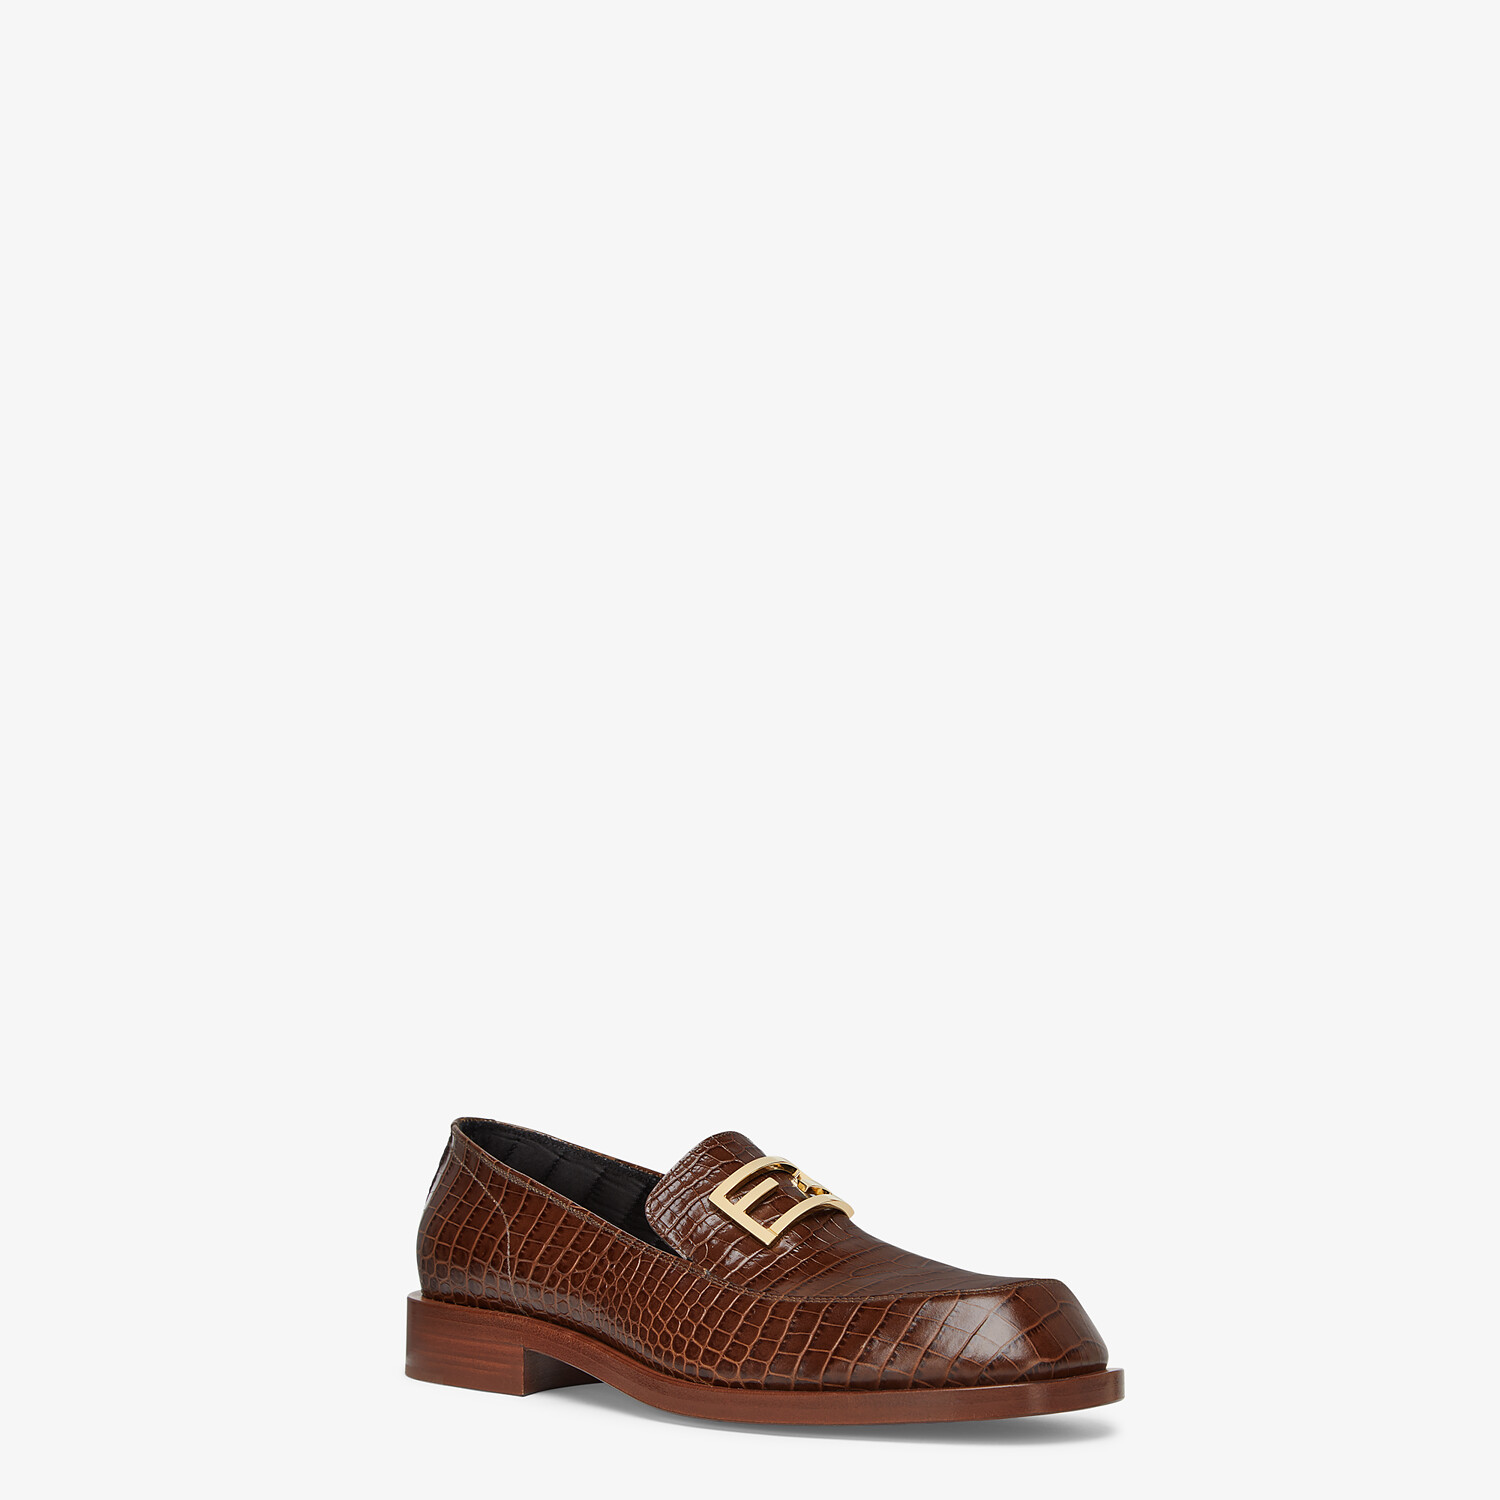 FENDI LOAFERS - Brown leather loafers - view 2 detail